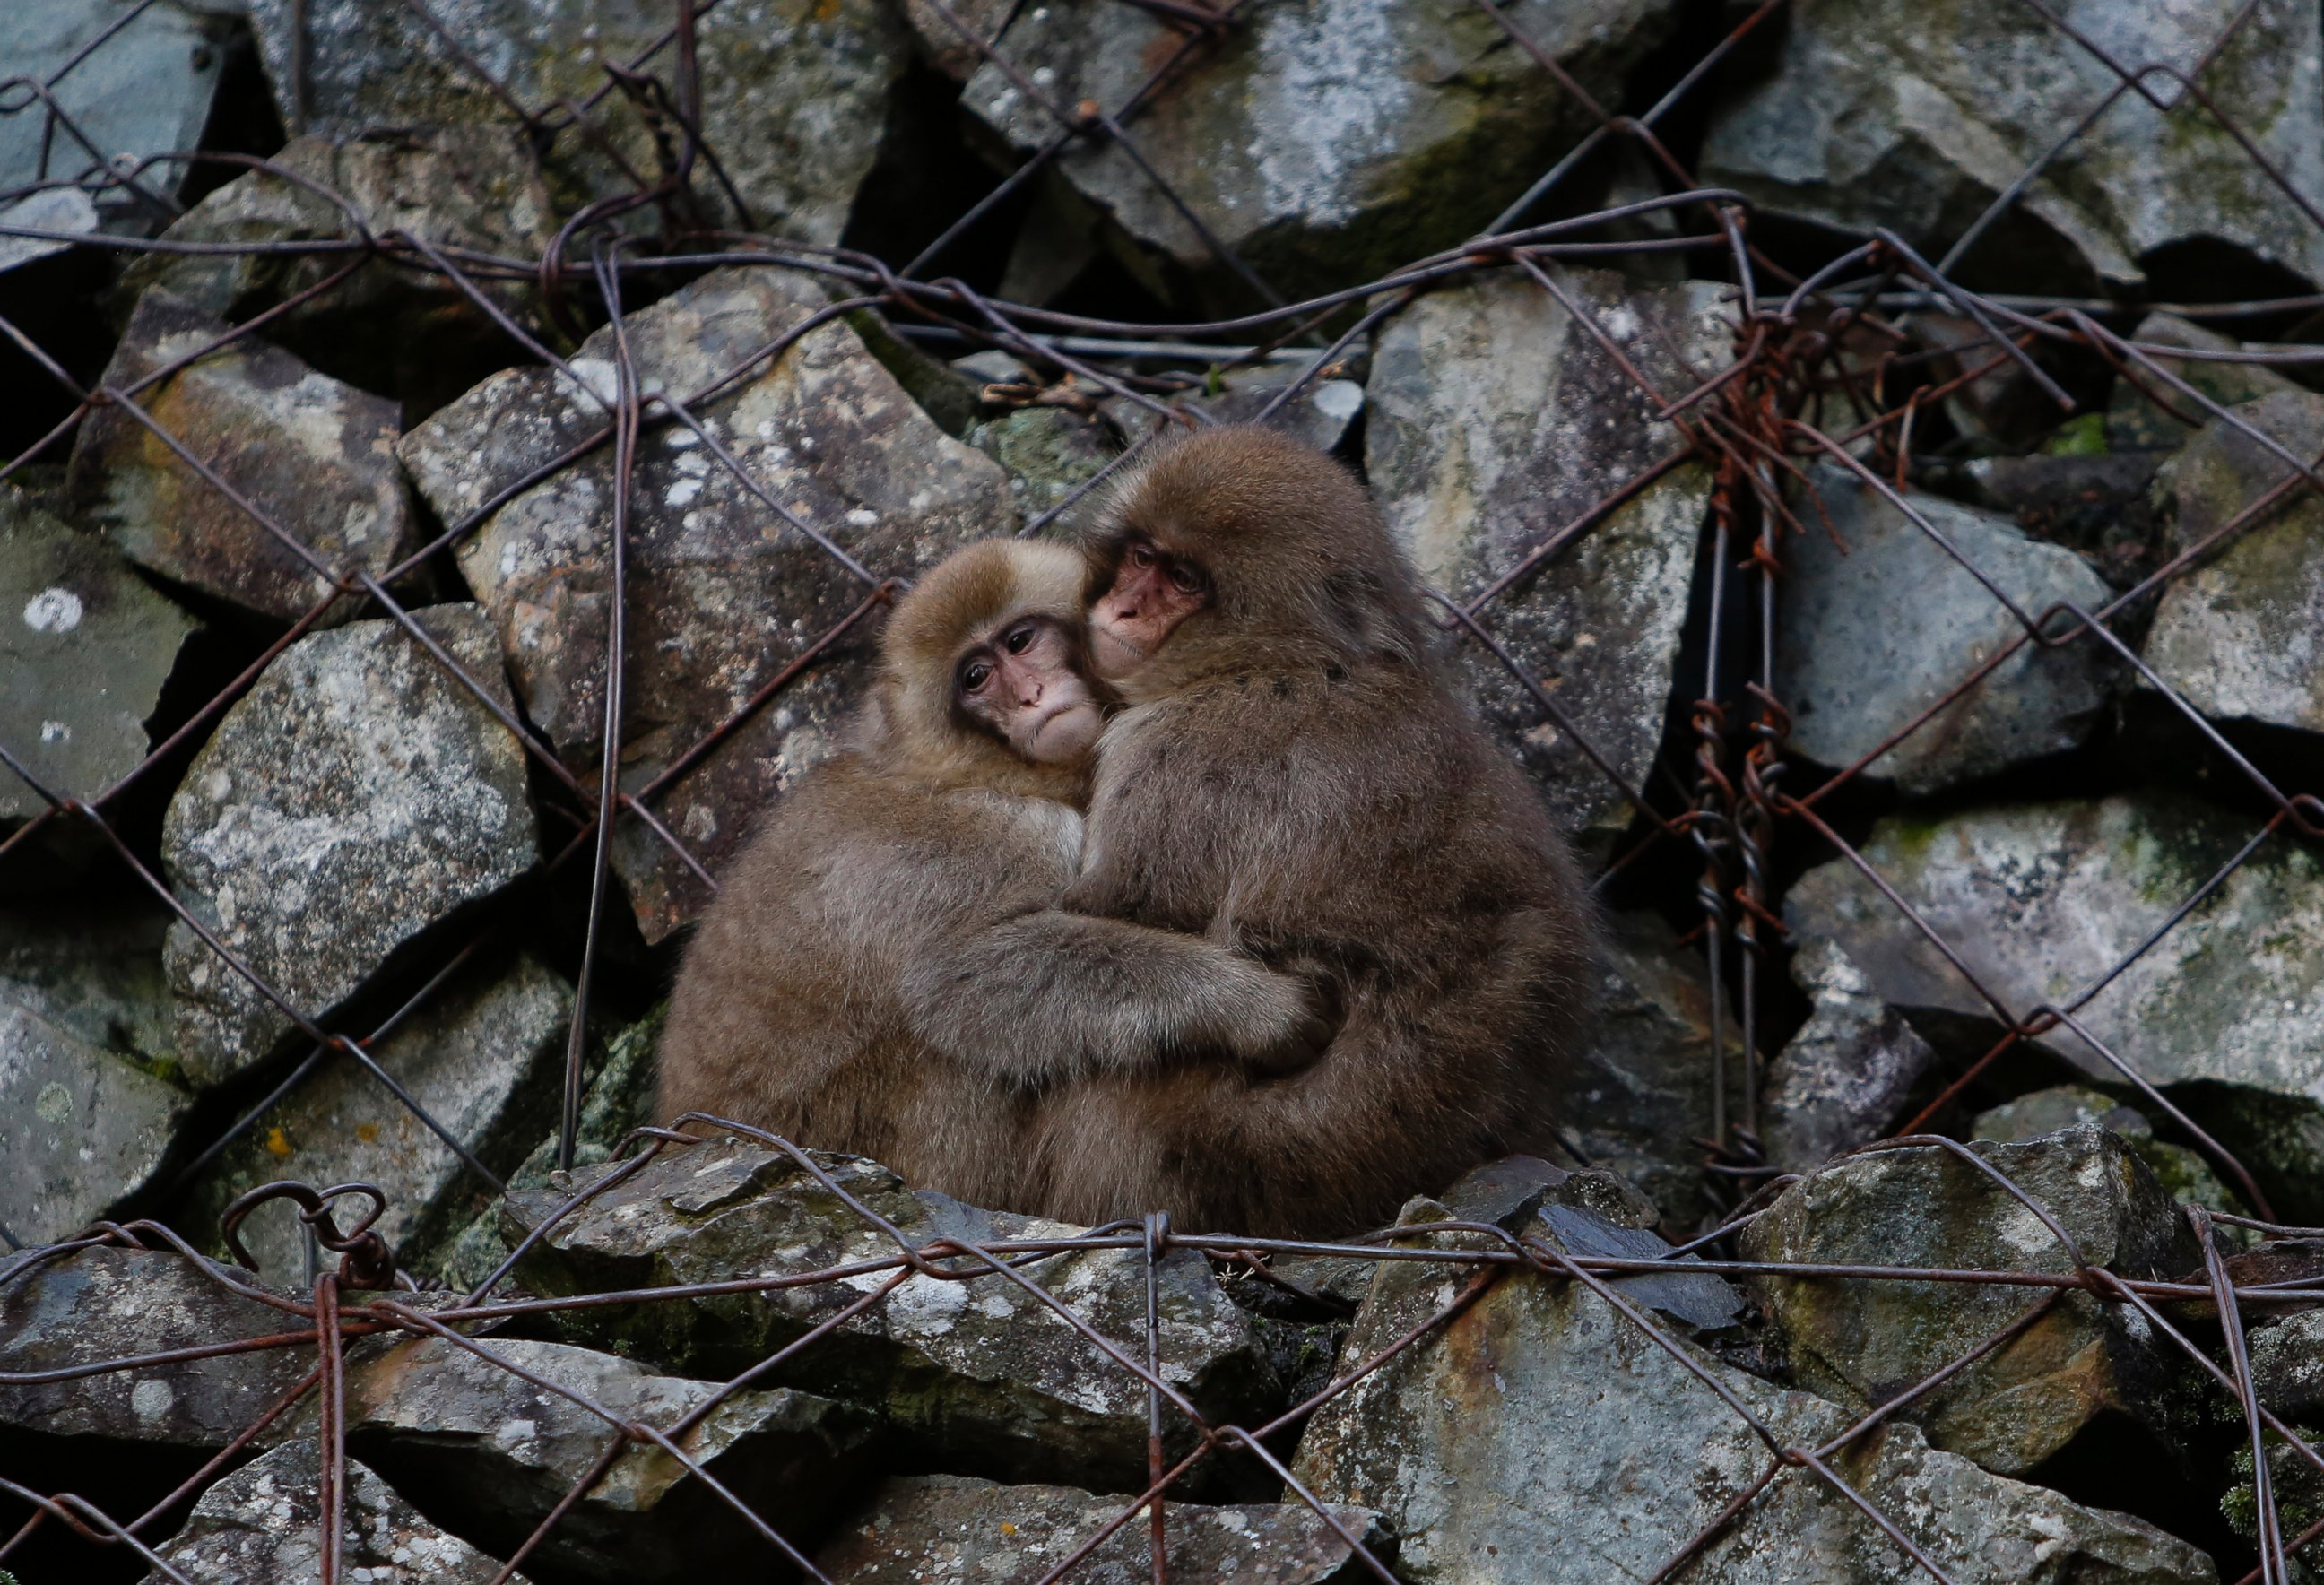 Snow Monkeys Snuggle With Each Other